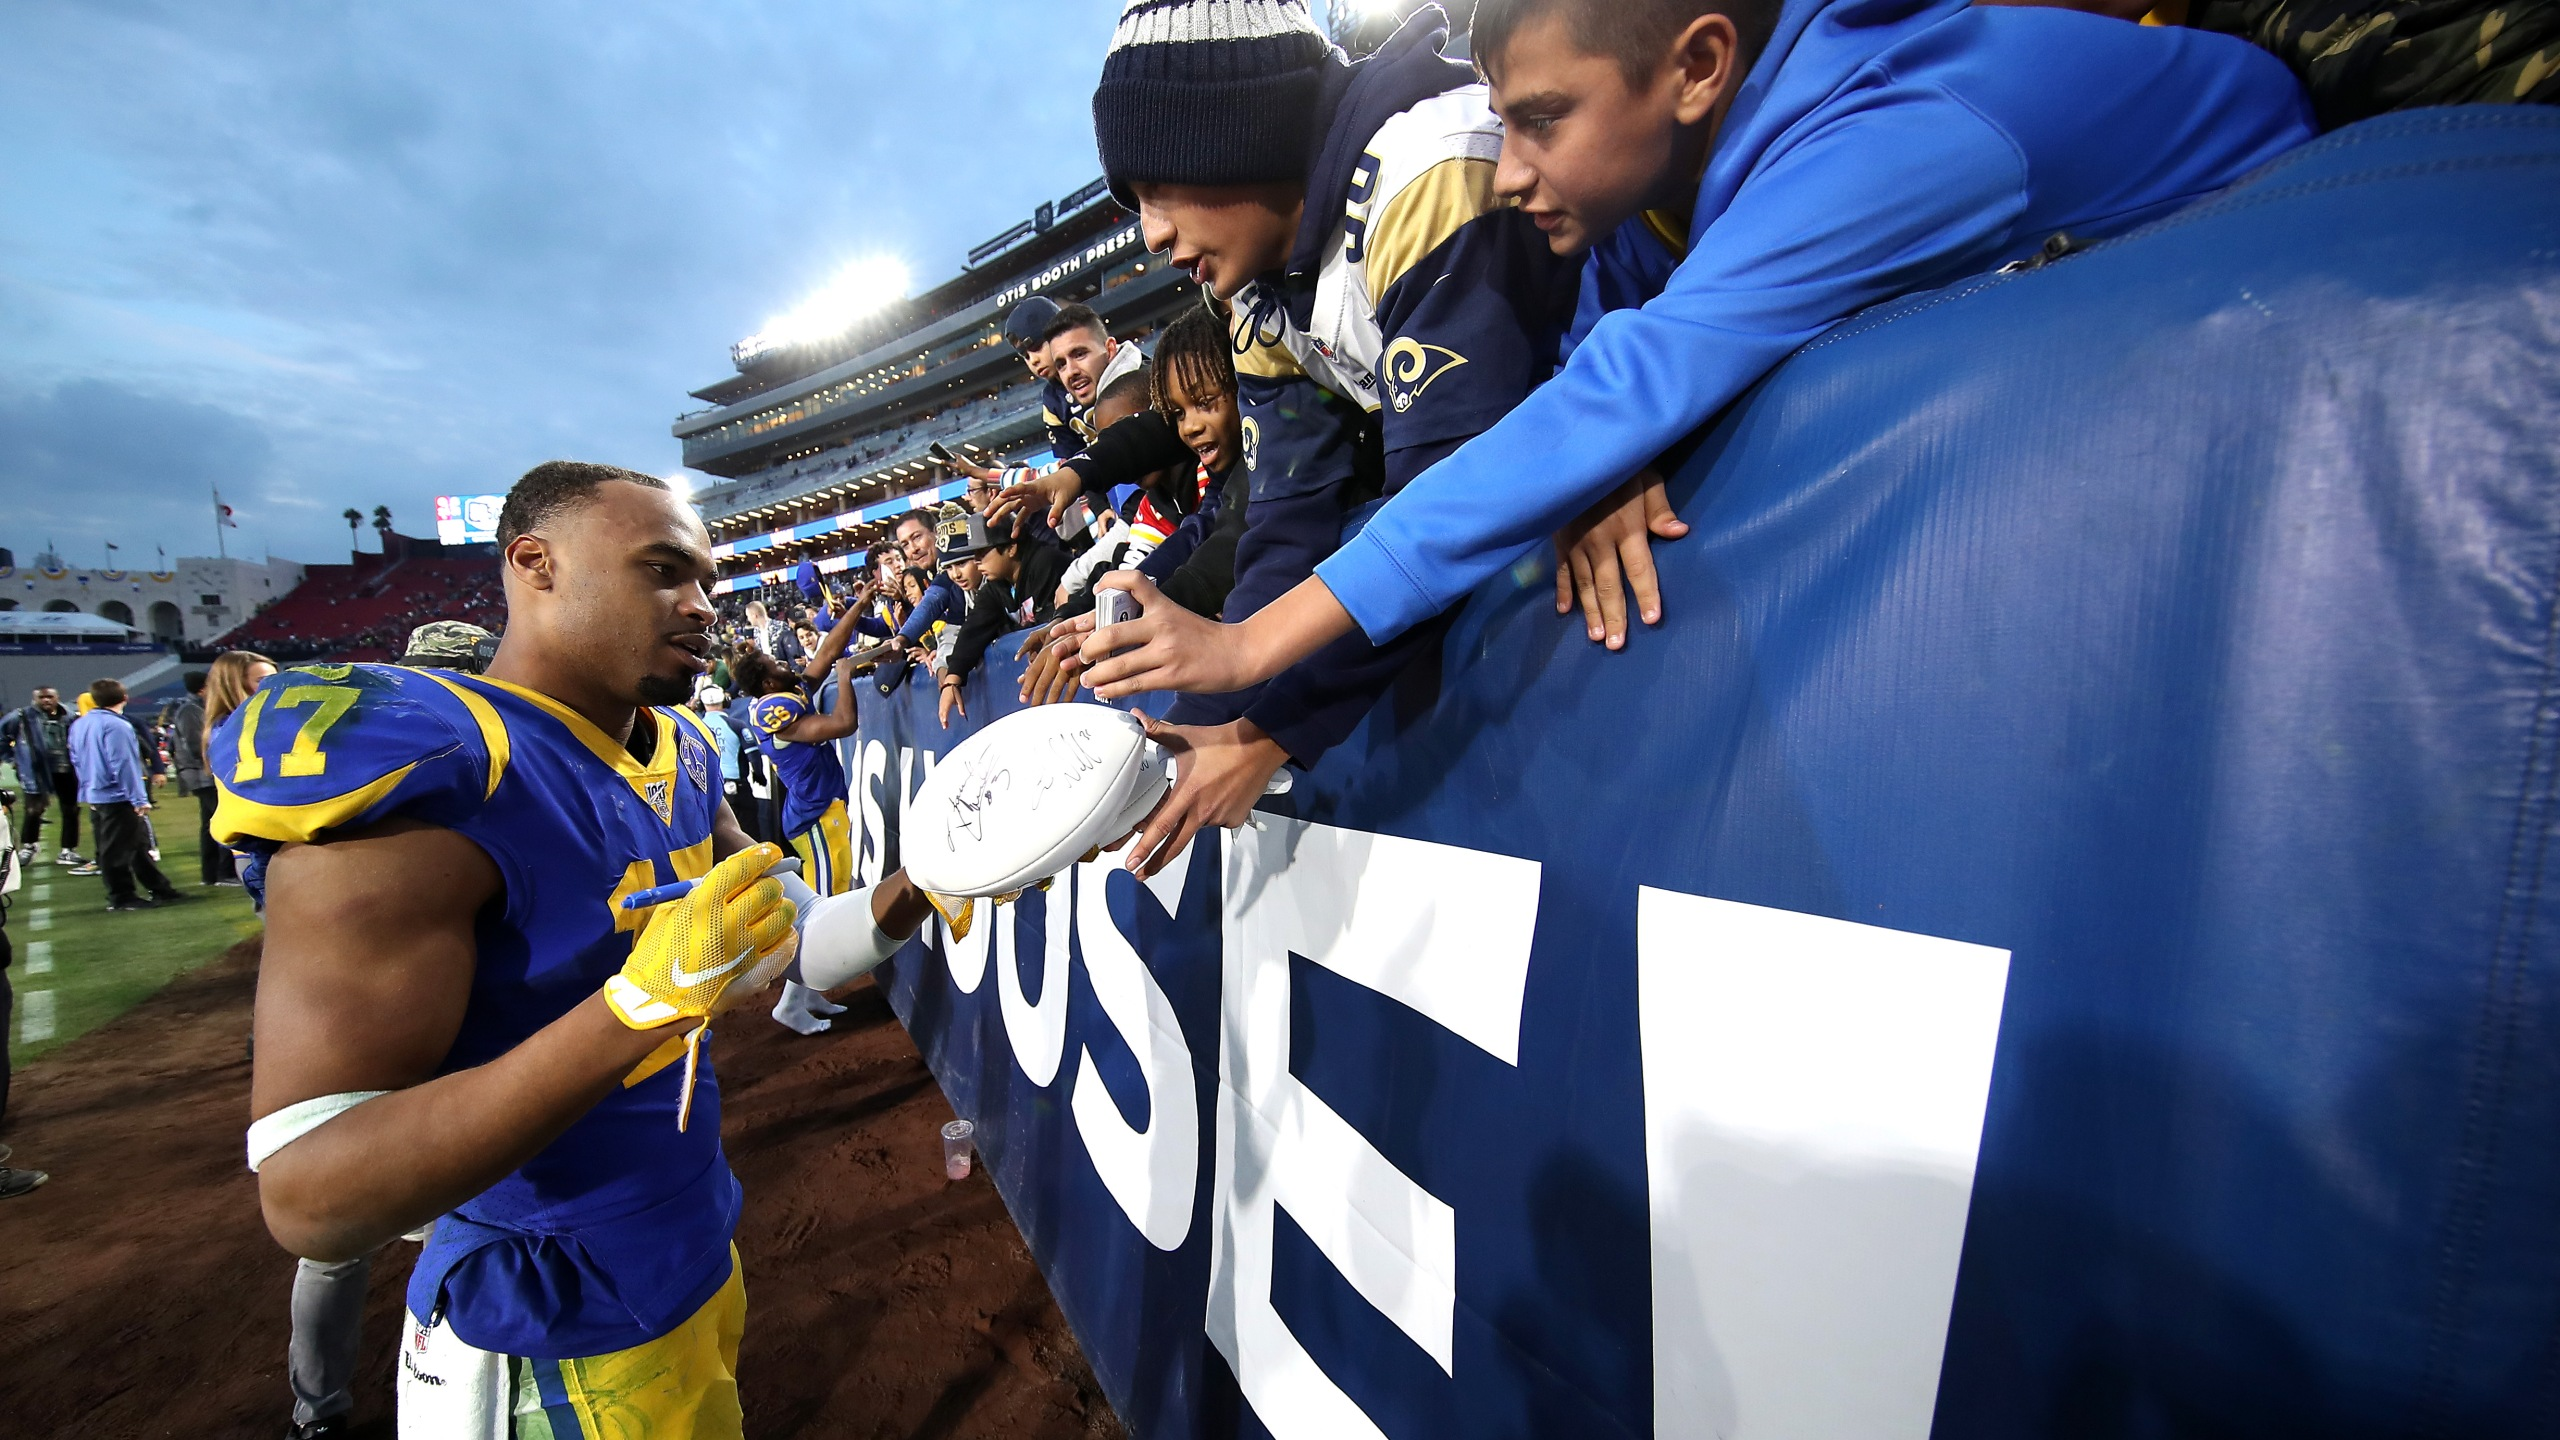 Robert Woods of the Los Angeles Rams signs autographs for fans after a game against the Arizona Cardinals at Los Angeles Memorial Coliseum on Dec. 29, 2019. (Credit: Sean M. Haffey/Getty Images)